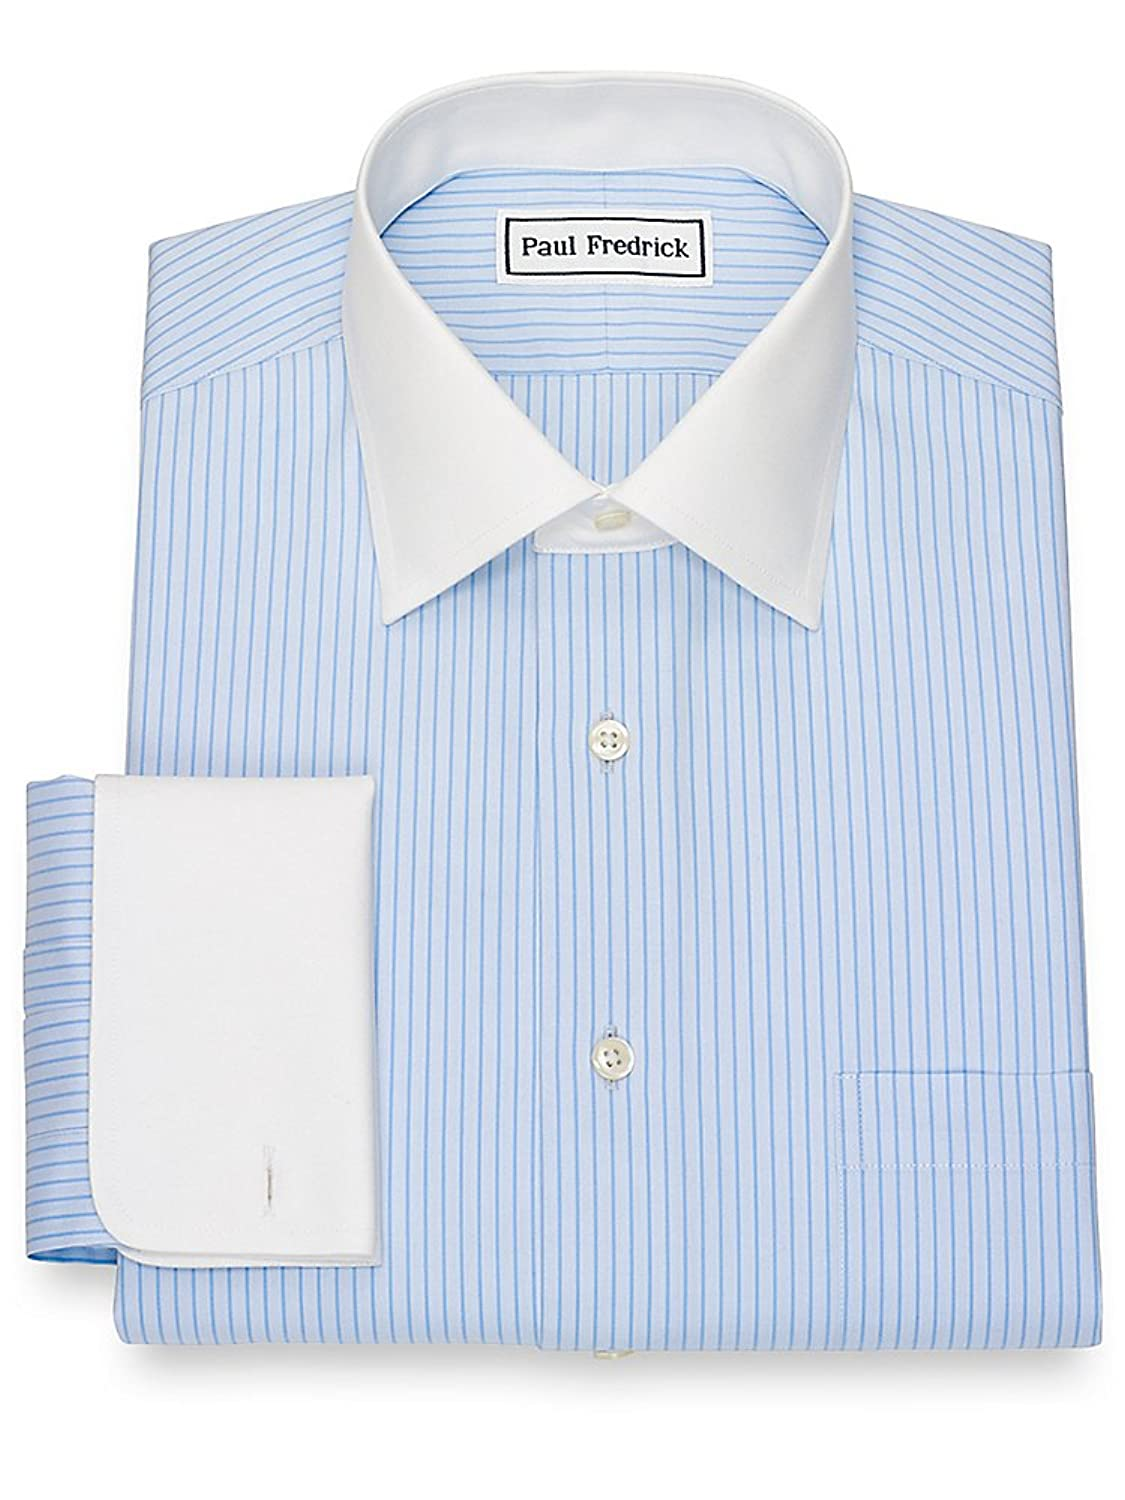 1920s Style Mens Shirts | Peaky Blinders Shirts and Collars Paul Fredrick Mens Non-Iron Cotton Stripe Dress Shirt  AT vintagedancer.com